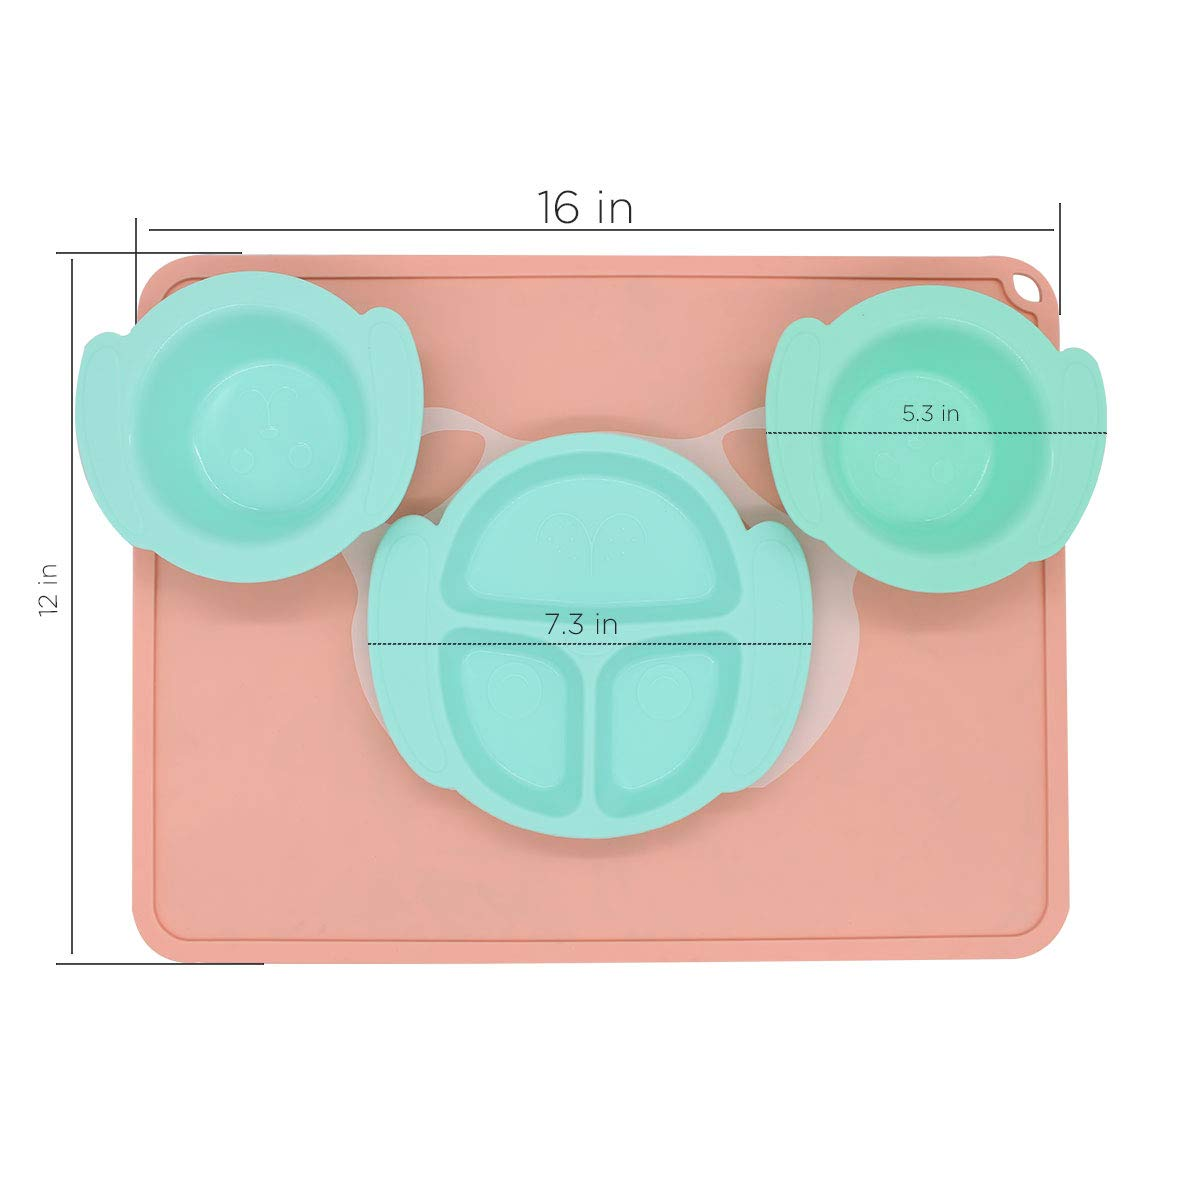 Non-Slip Placemat Plate Design Cartoon Bowl /& Soft Spoon Aids Self Feeding Silicone Bowl and Dishes for Toddler Baby Feeding Set Toddler Dishes